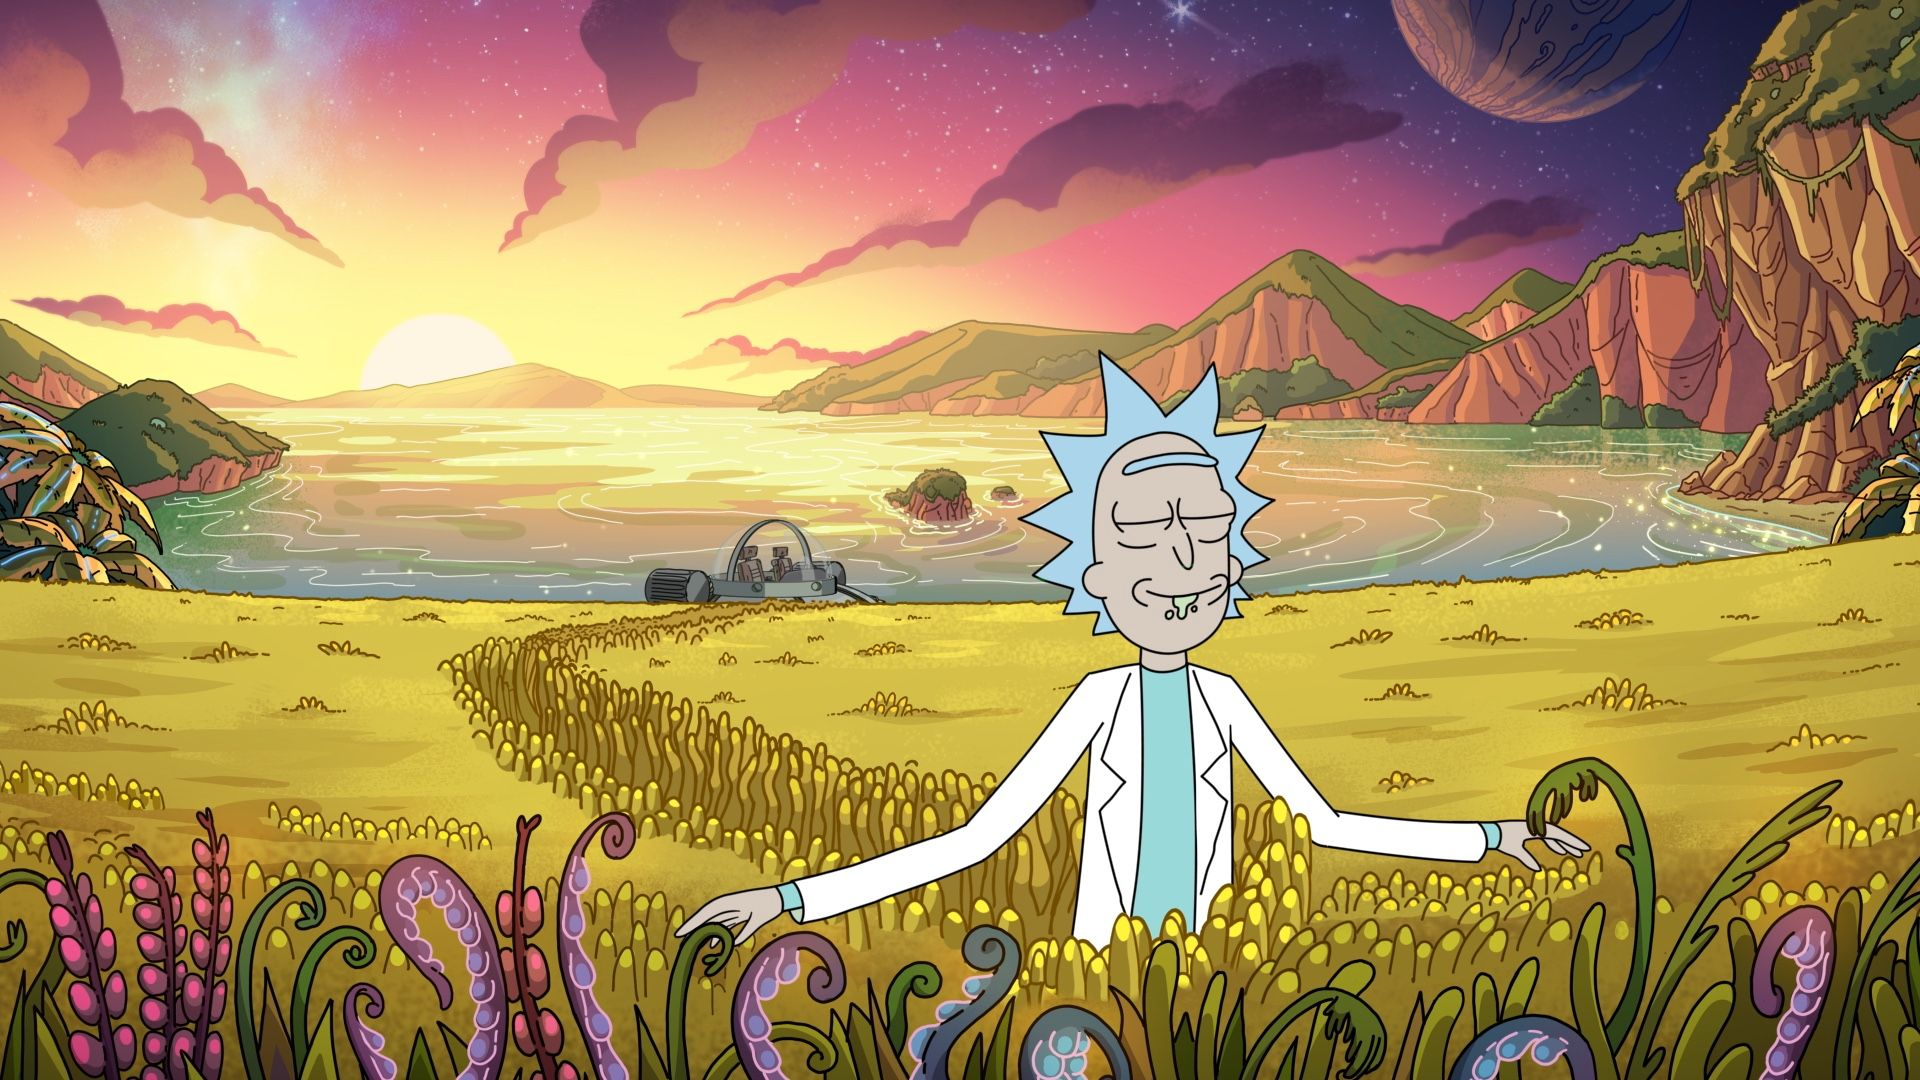 Rick And Morty Live Wallpaper Android Rick And Morty Poster Wallpaper Pc Rick And Morty Season